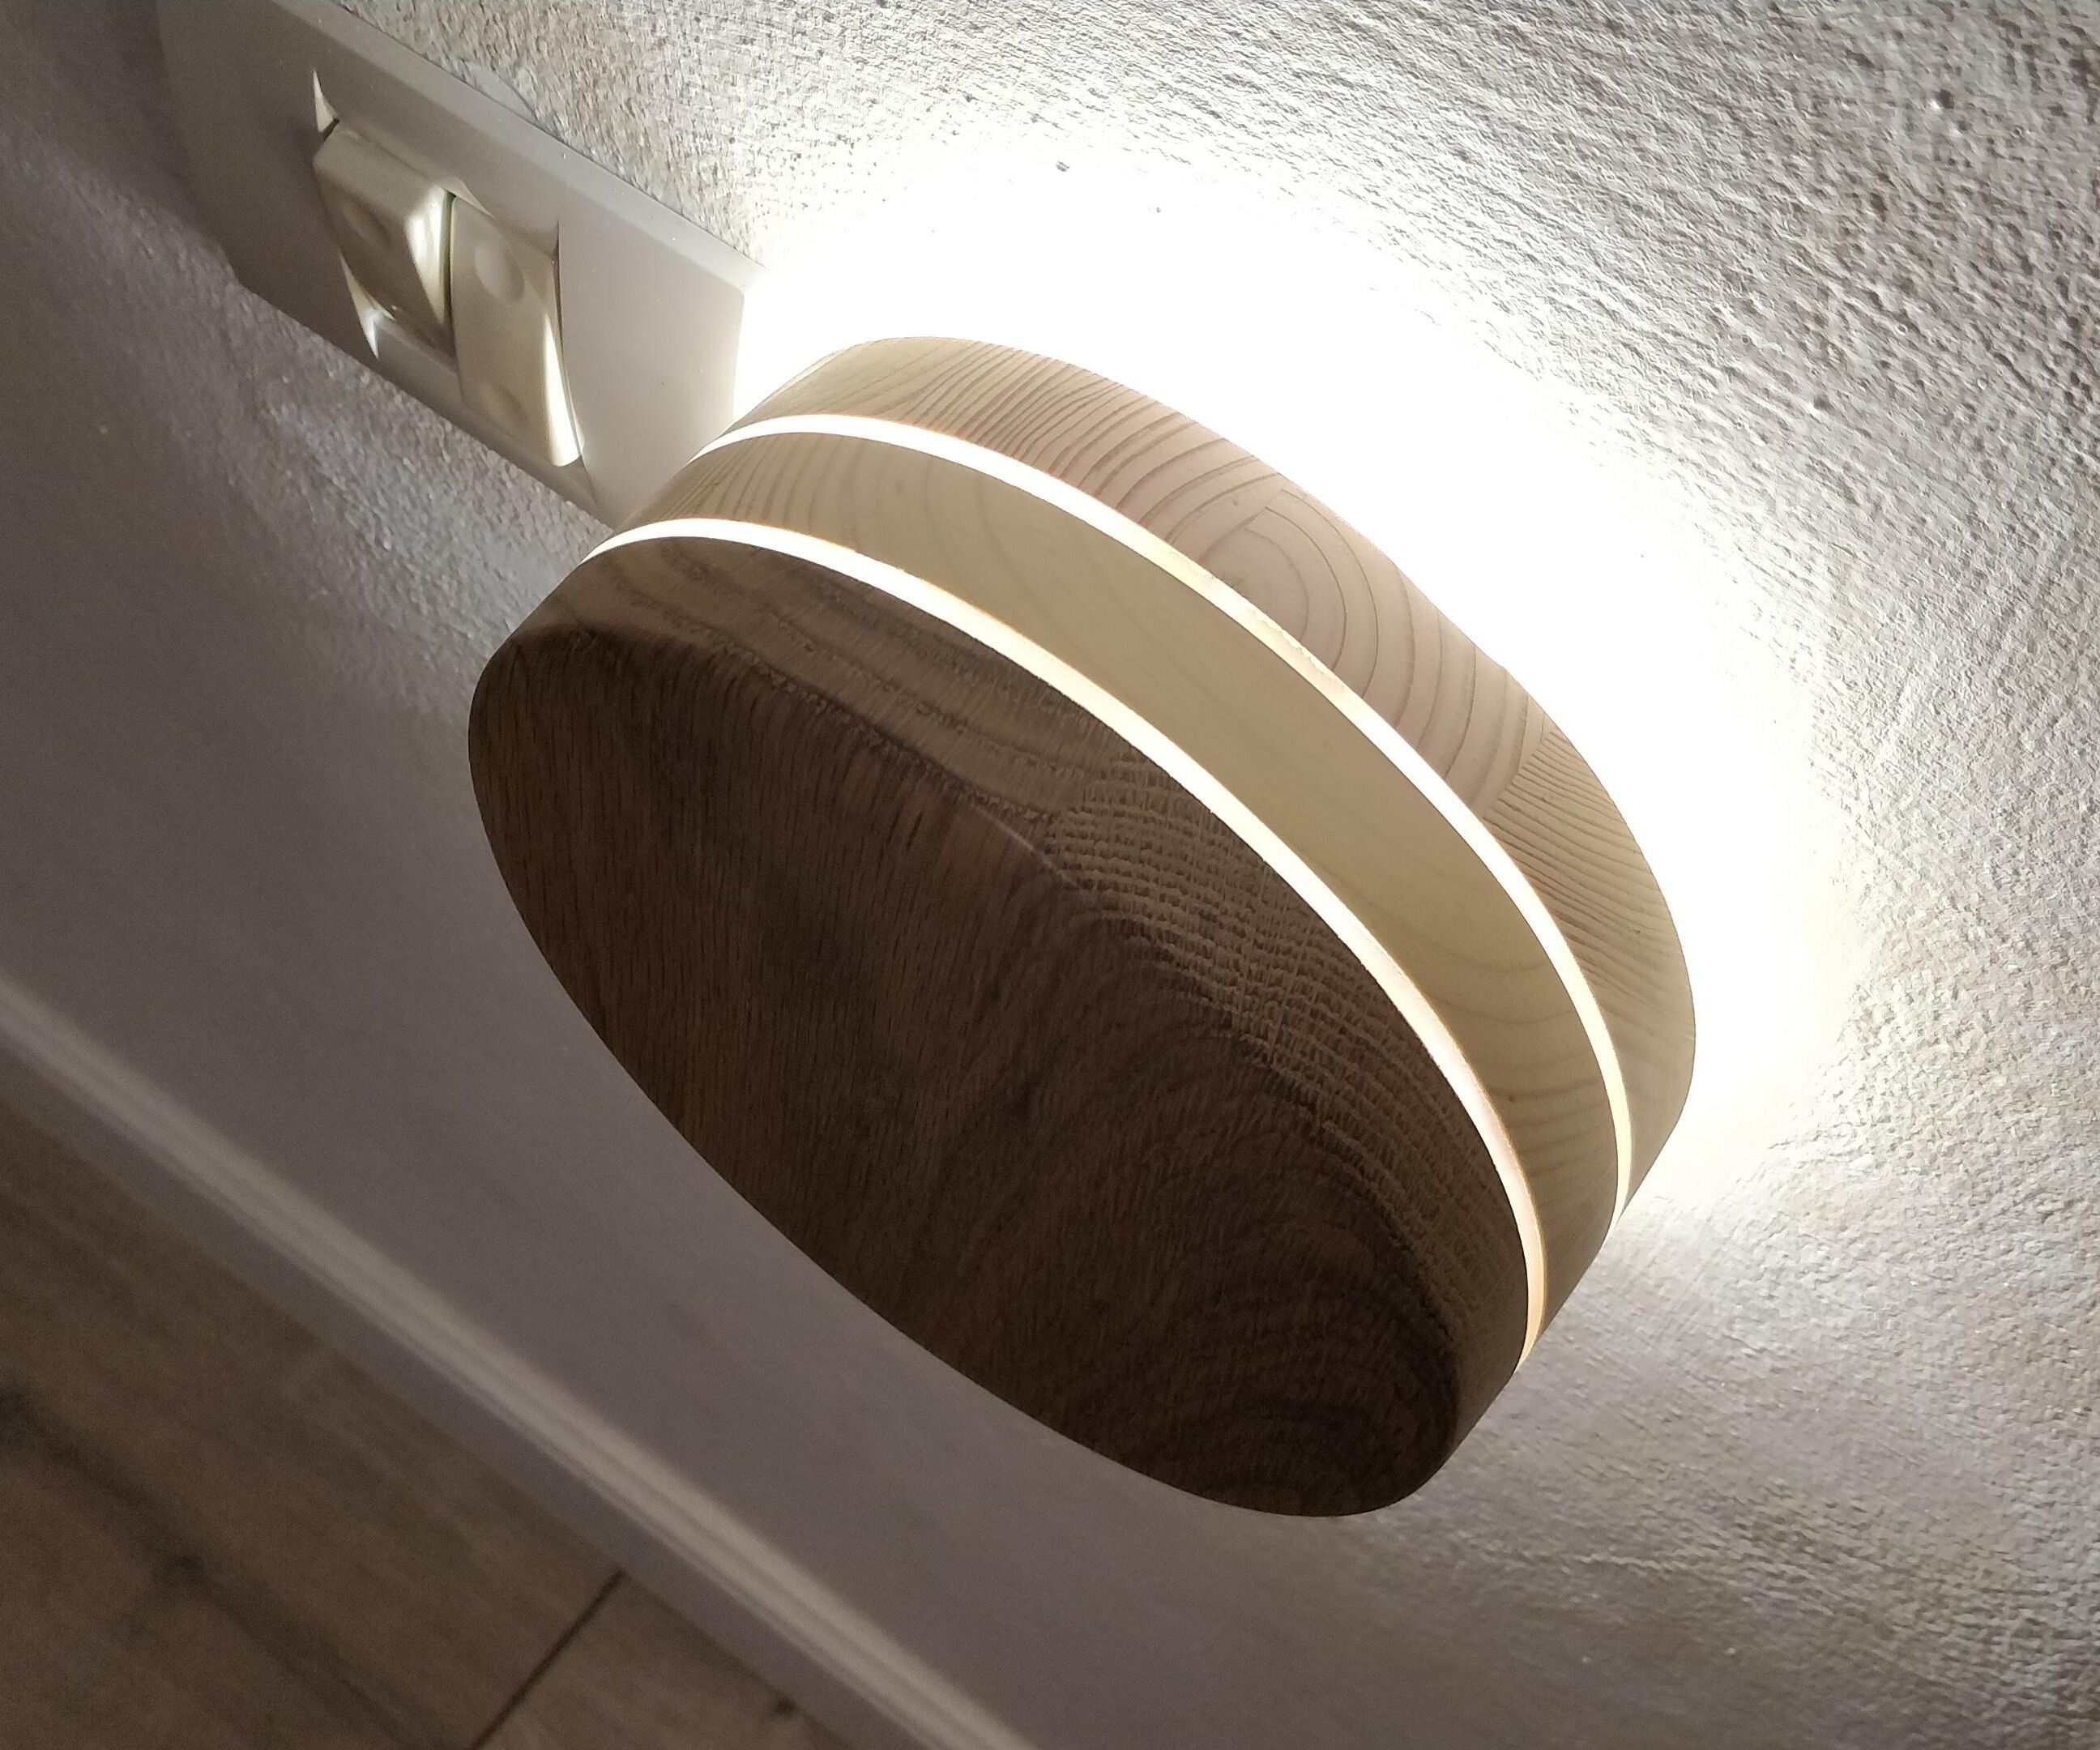 Plug-in Round Wood Wall LED Lamp | Portable Circle Socket Plug Night Lamp